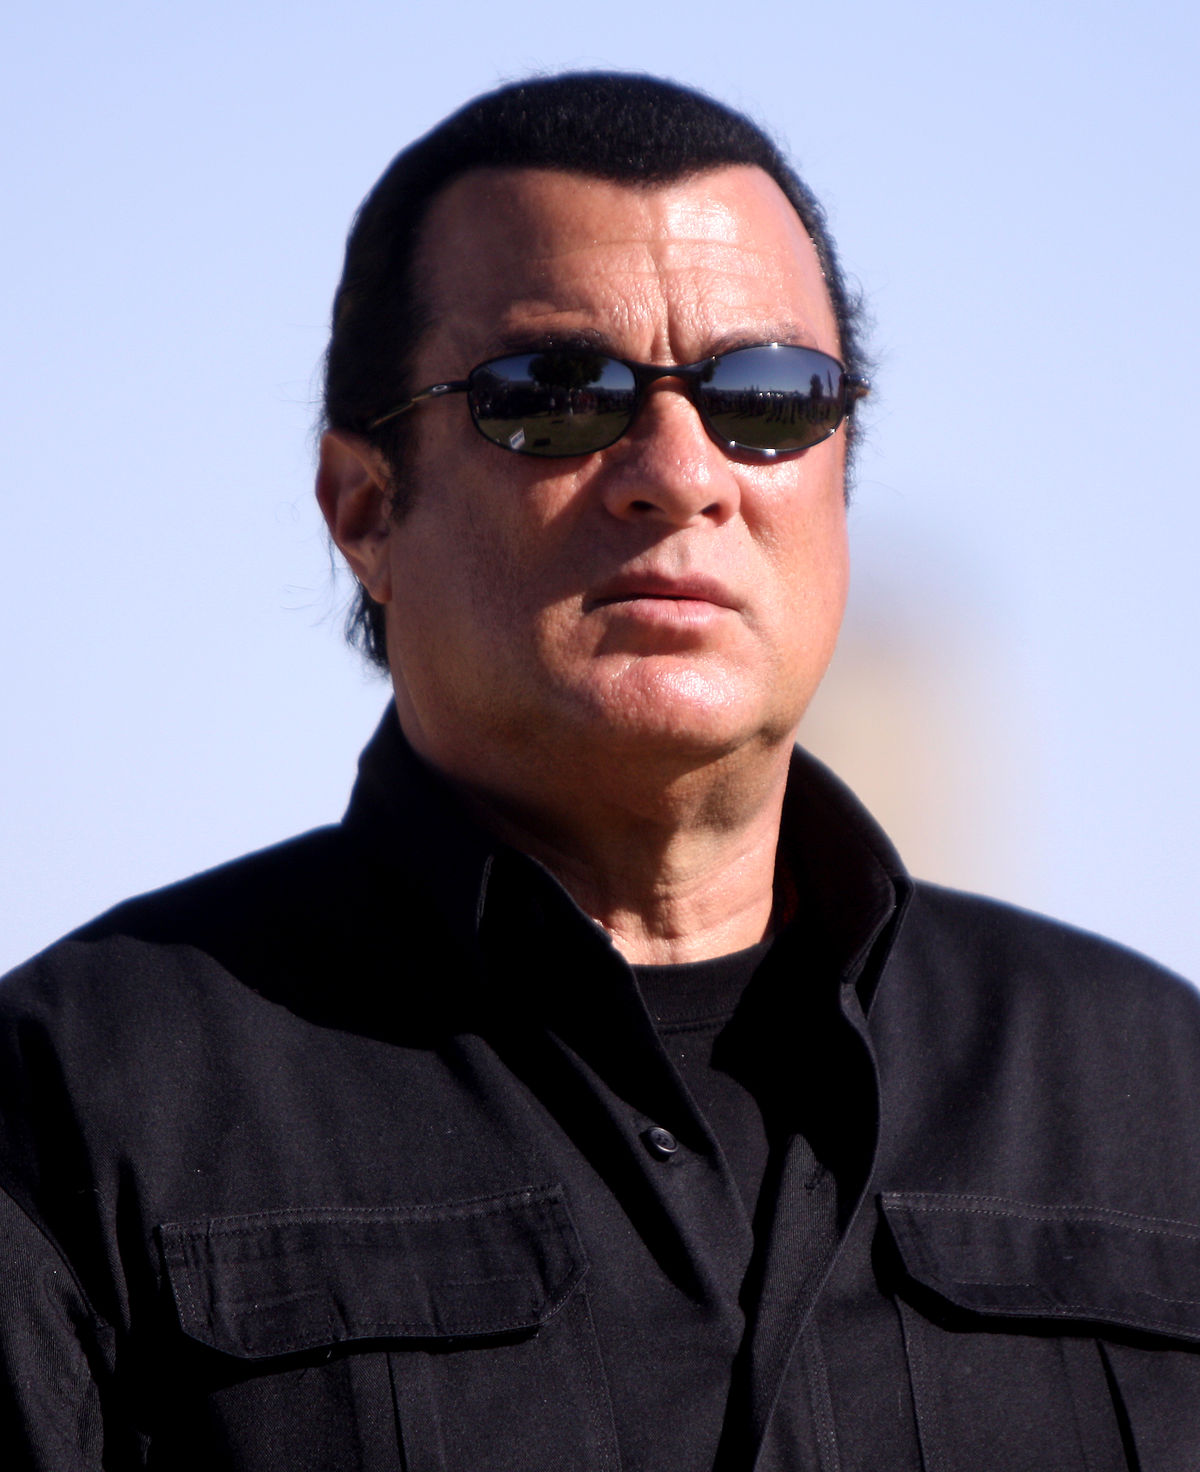 Steven Seagal - Wikipedia